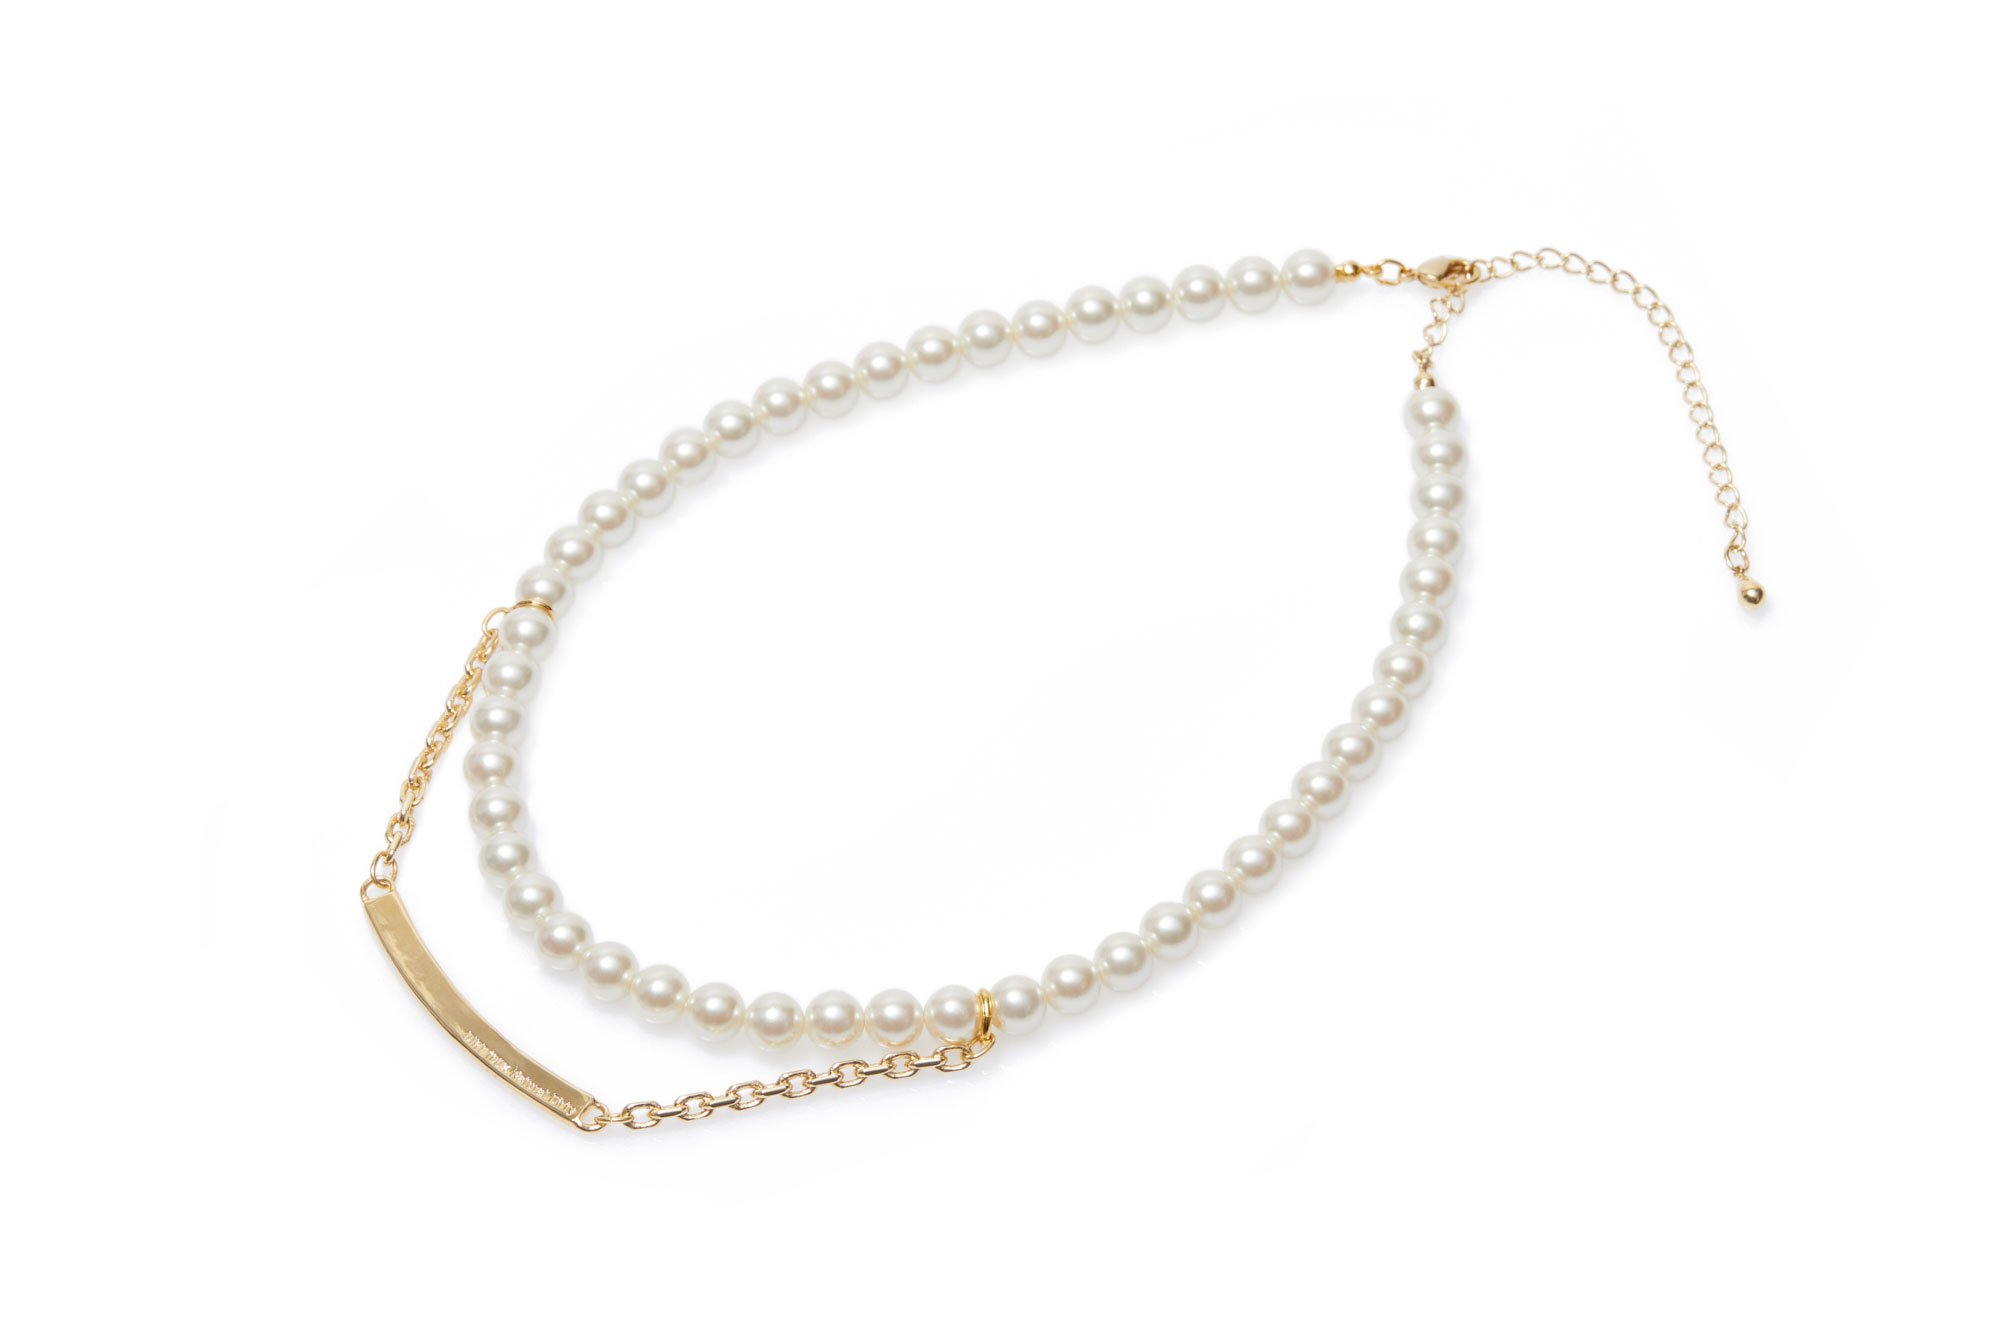 <img class='new_mark_img1' src='https://img.shop-pro.jp/img/new/icons14.gif' style='border:none;display:inline;margin:0px;padding:0px;width:auto;' />2020AW collection Pearl Necklace GL